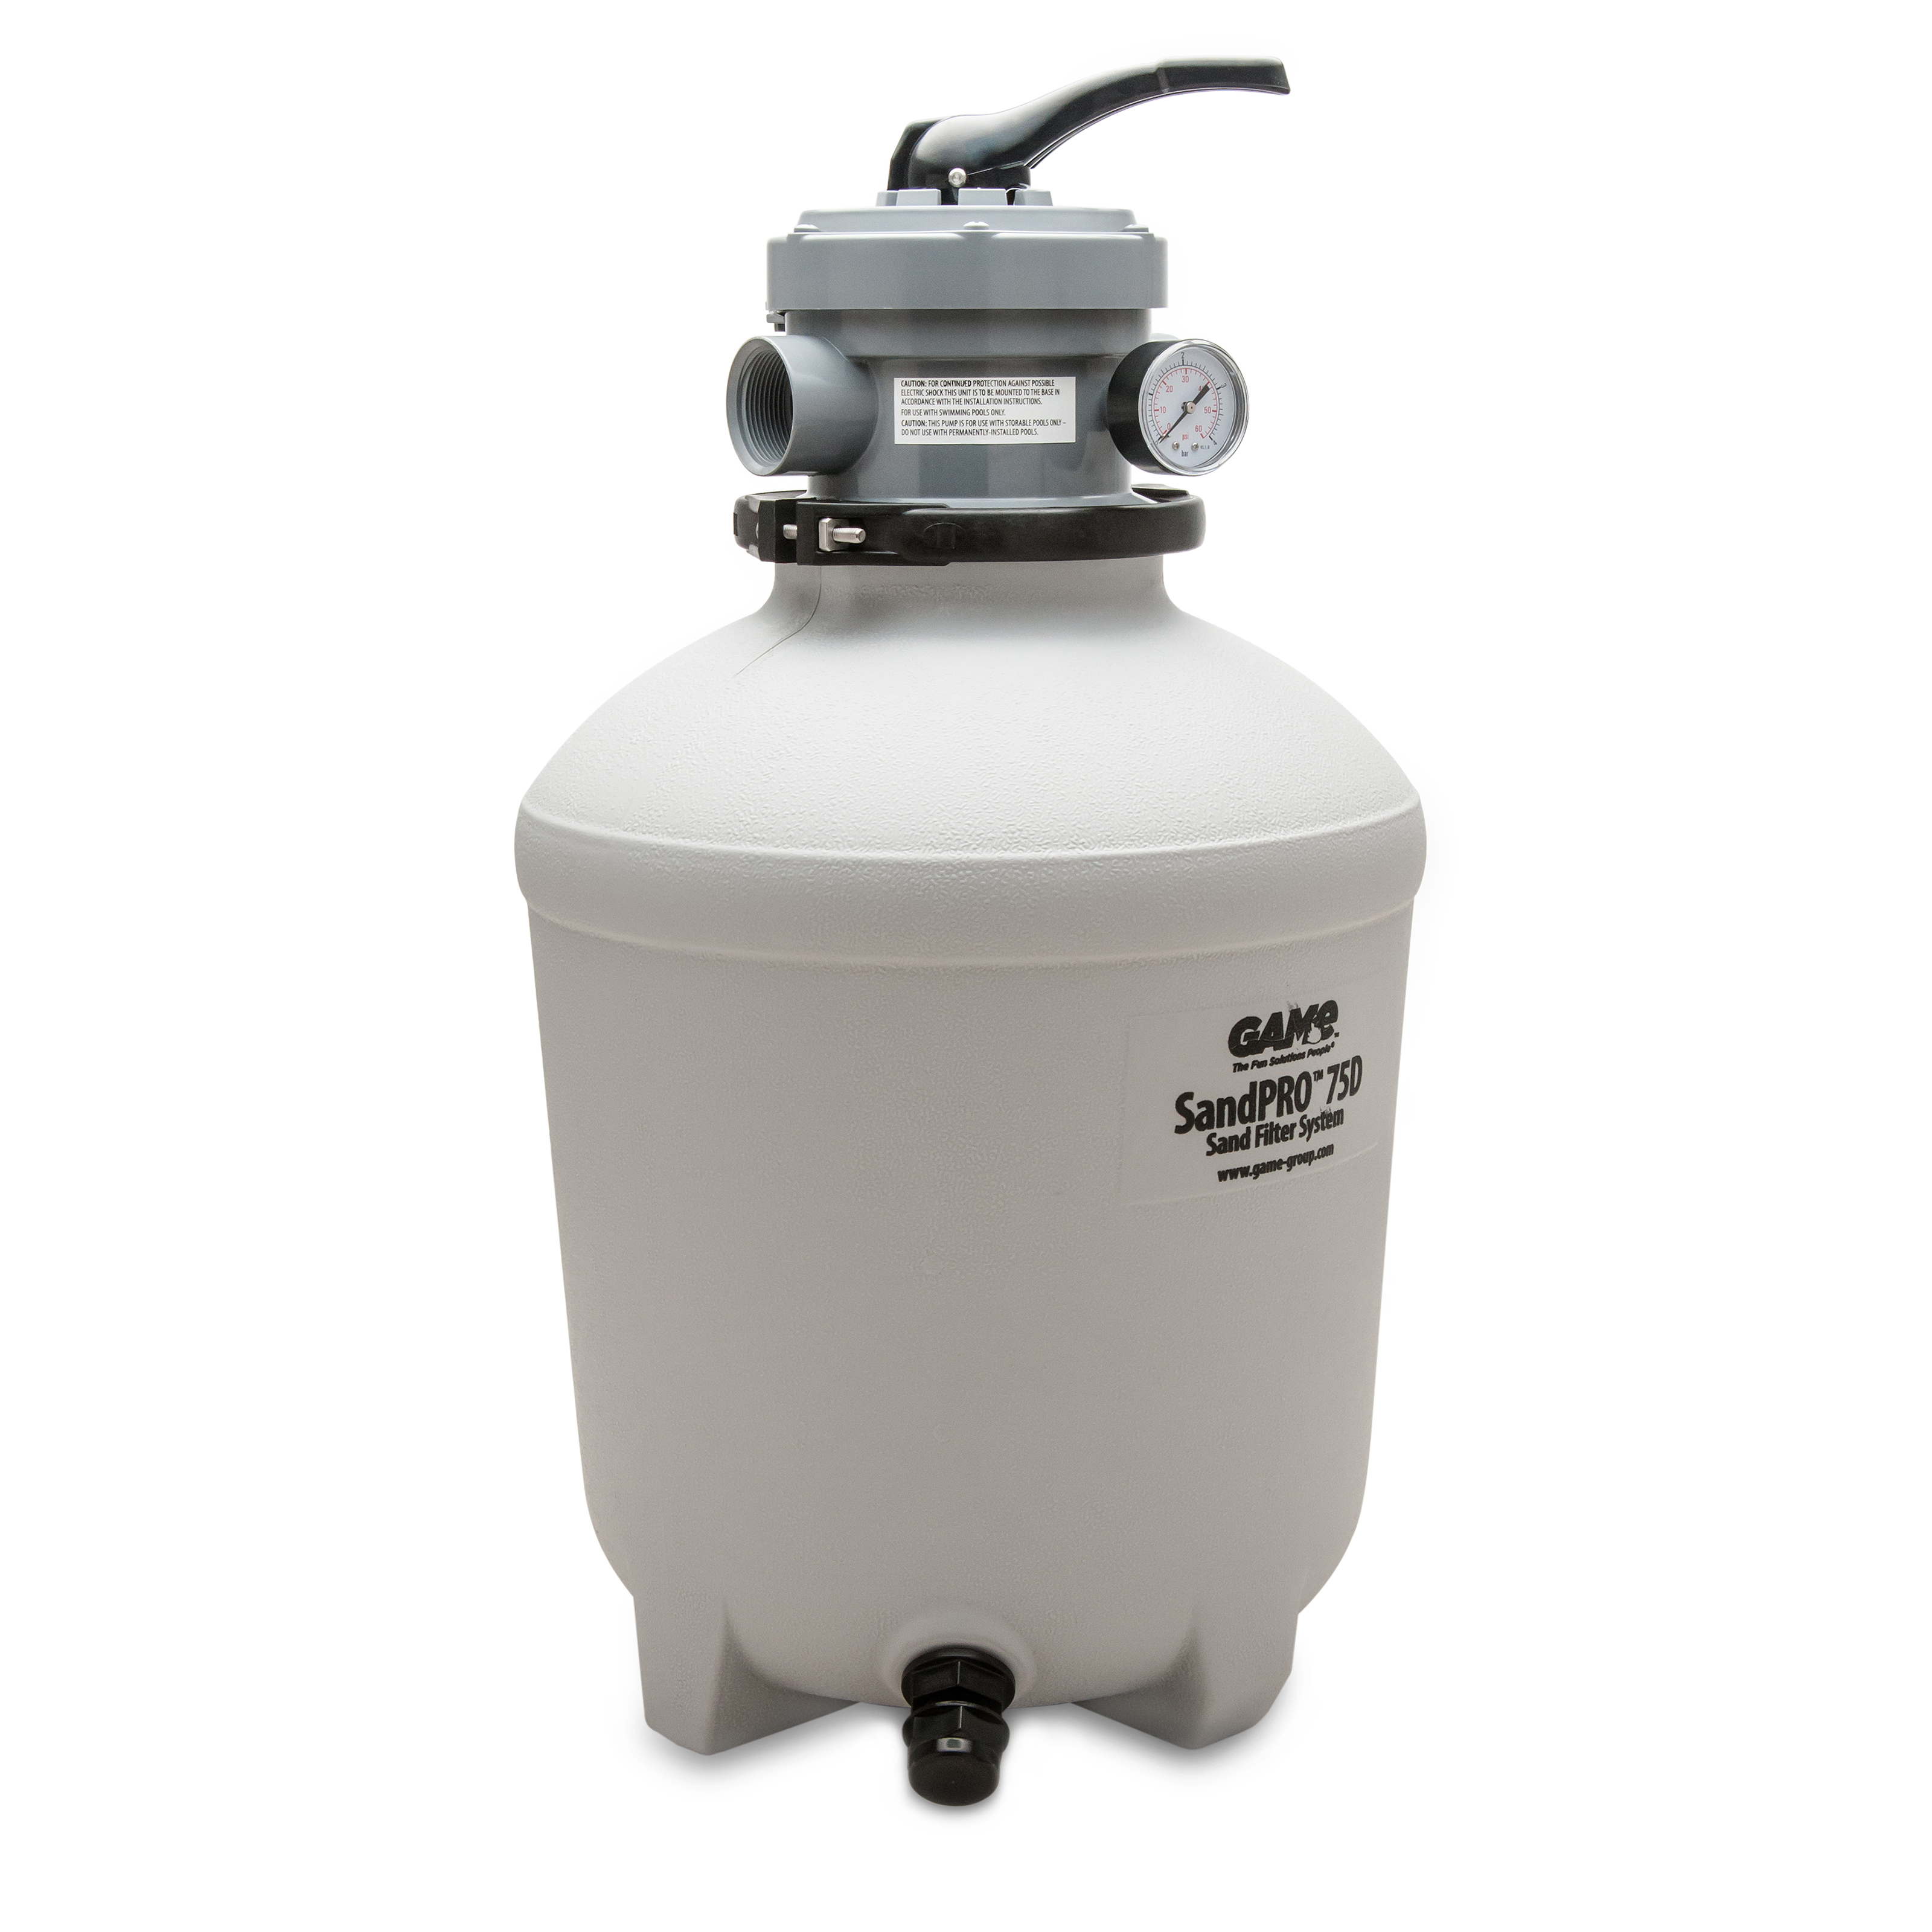 Game 3 4 Hp 15k Gallon 75d Sandpro Above Ground Pool Pump